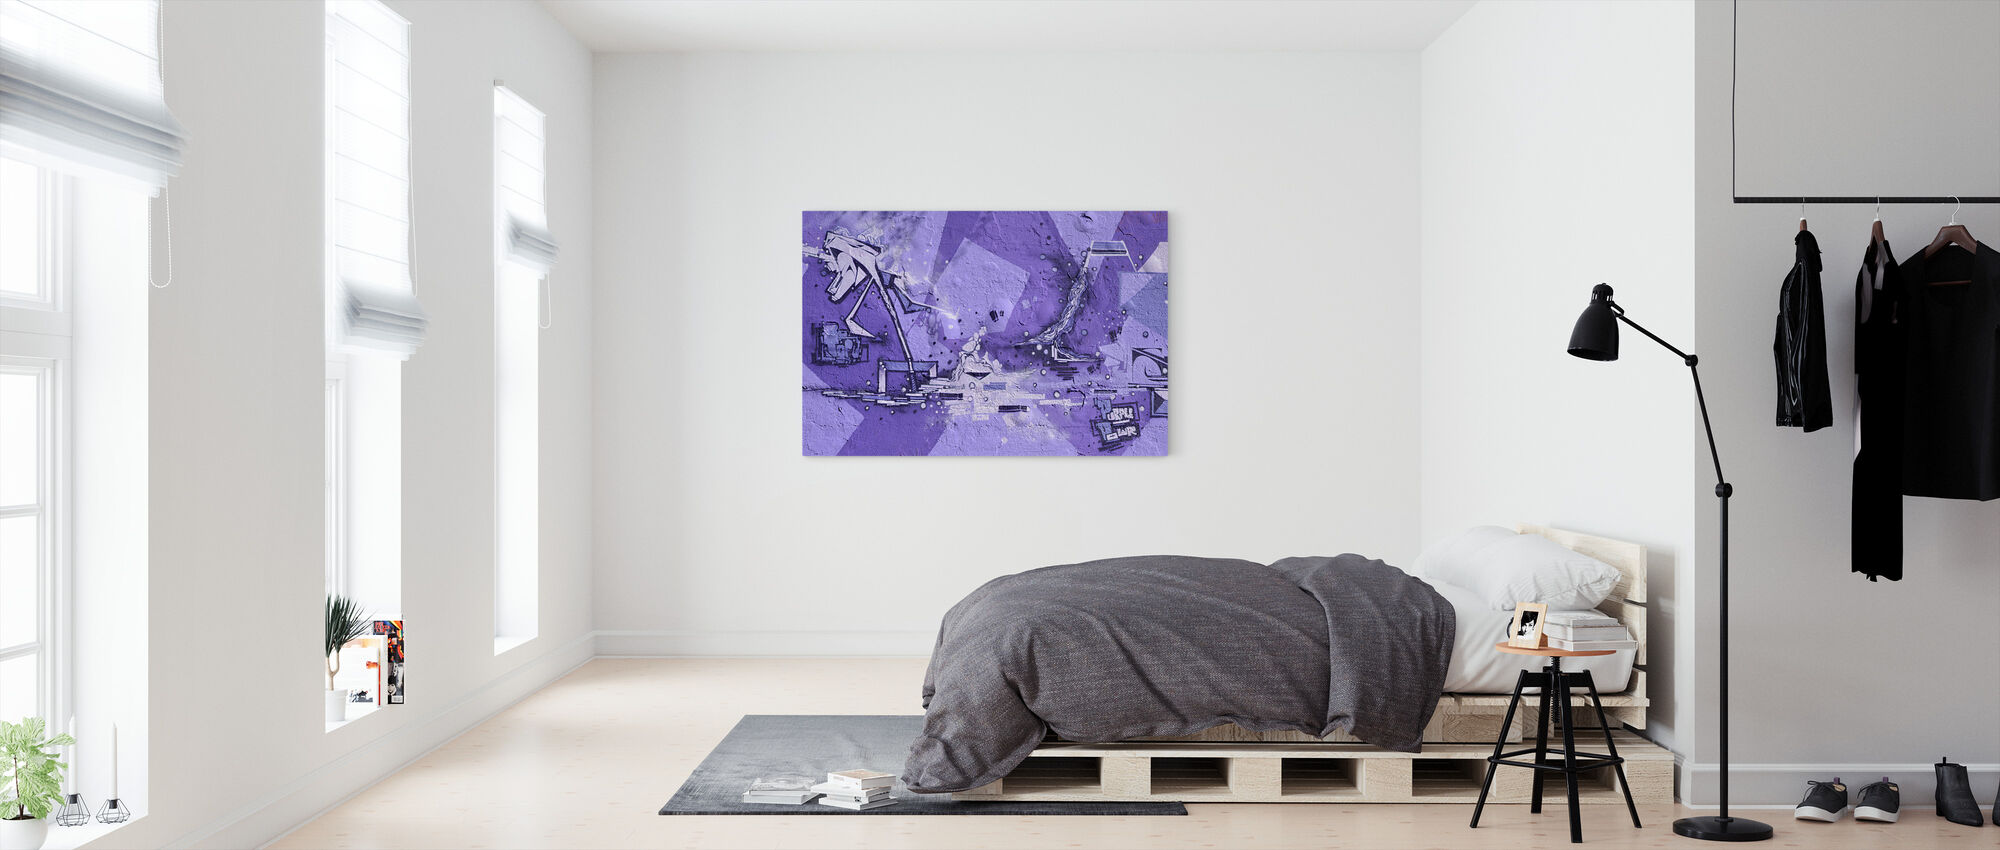 Purple Power Graffiti - Canvas print - Bedroom